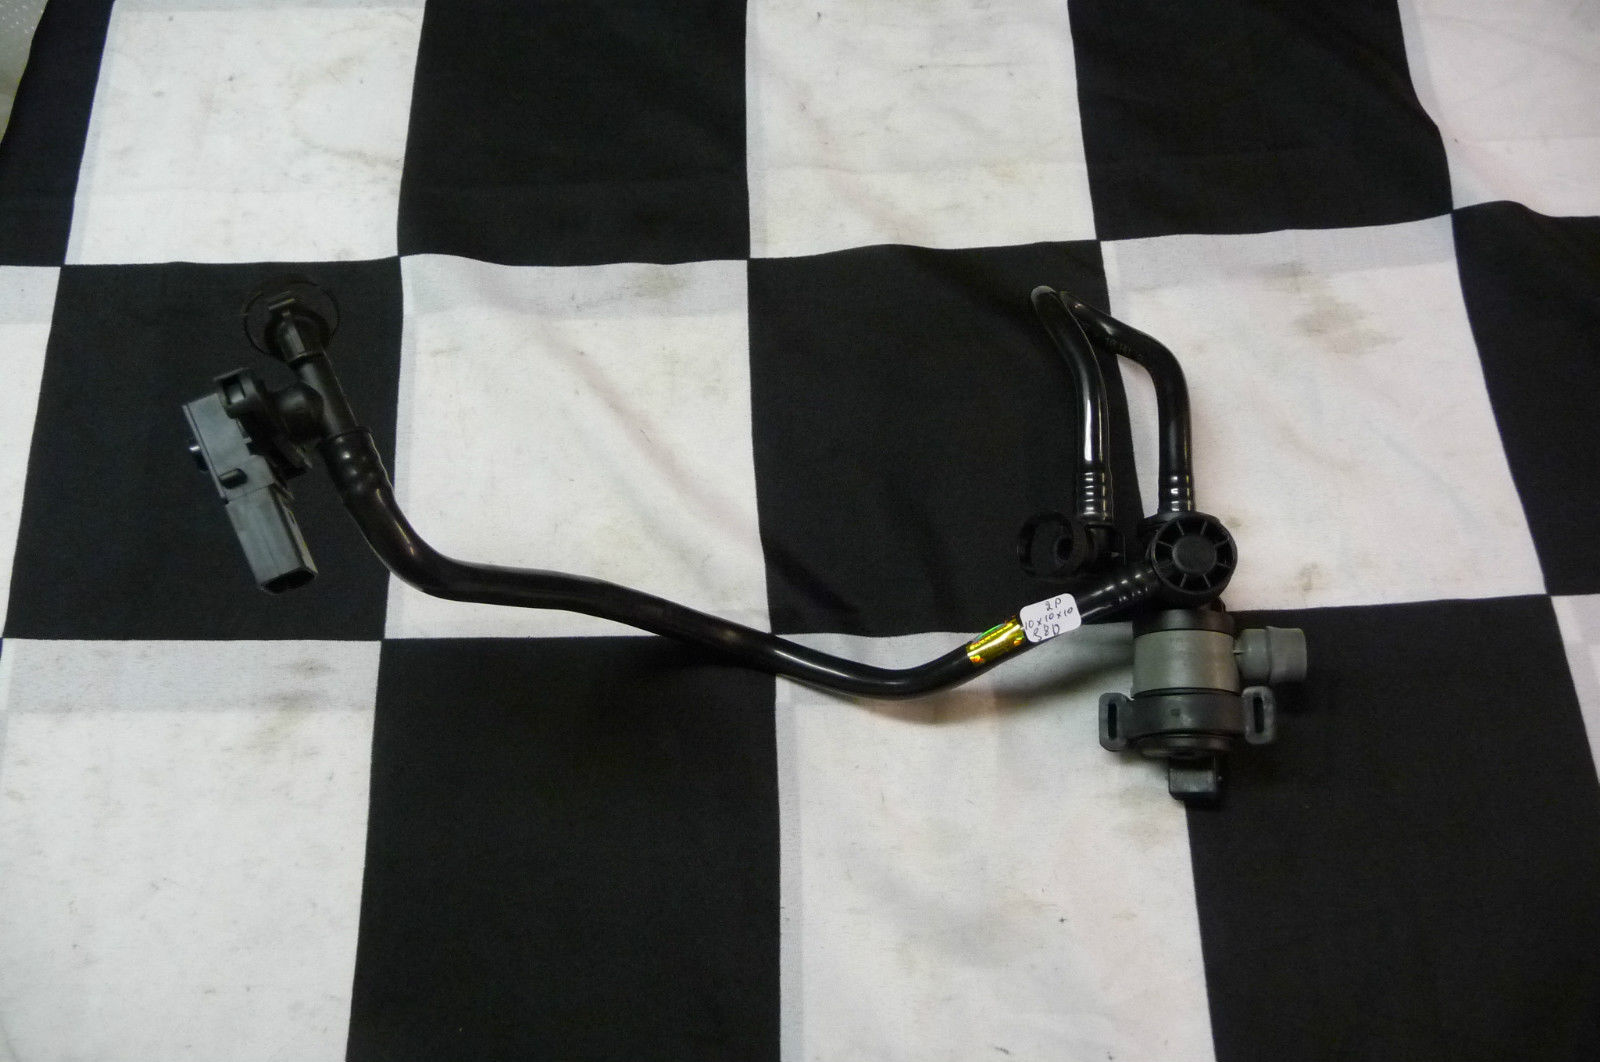 2012 2013 2014 2015 2016 2017 BMW 2 3 4 5 Series X3 Fuel Tank Ventilation Valve With Pipe 13907636145 OEM OE